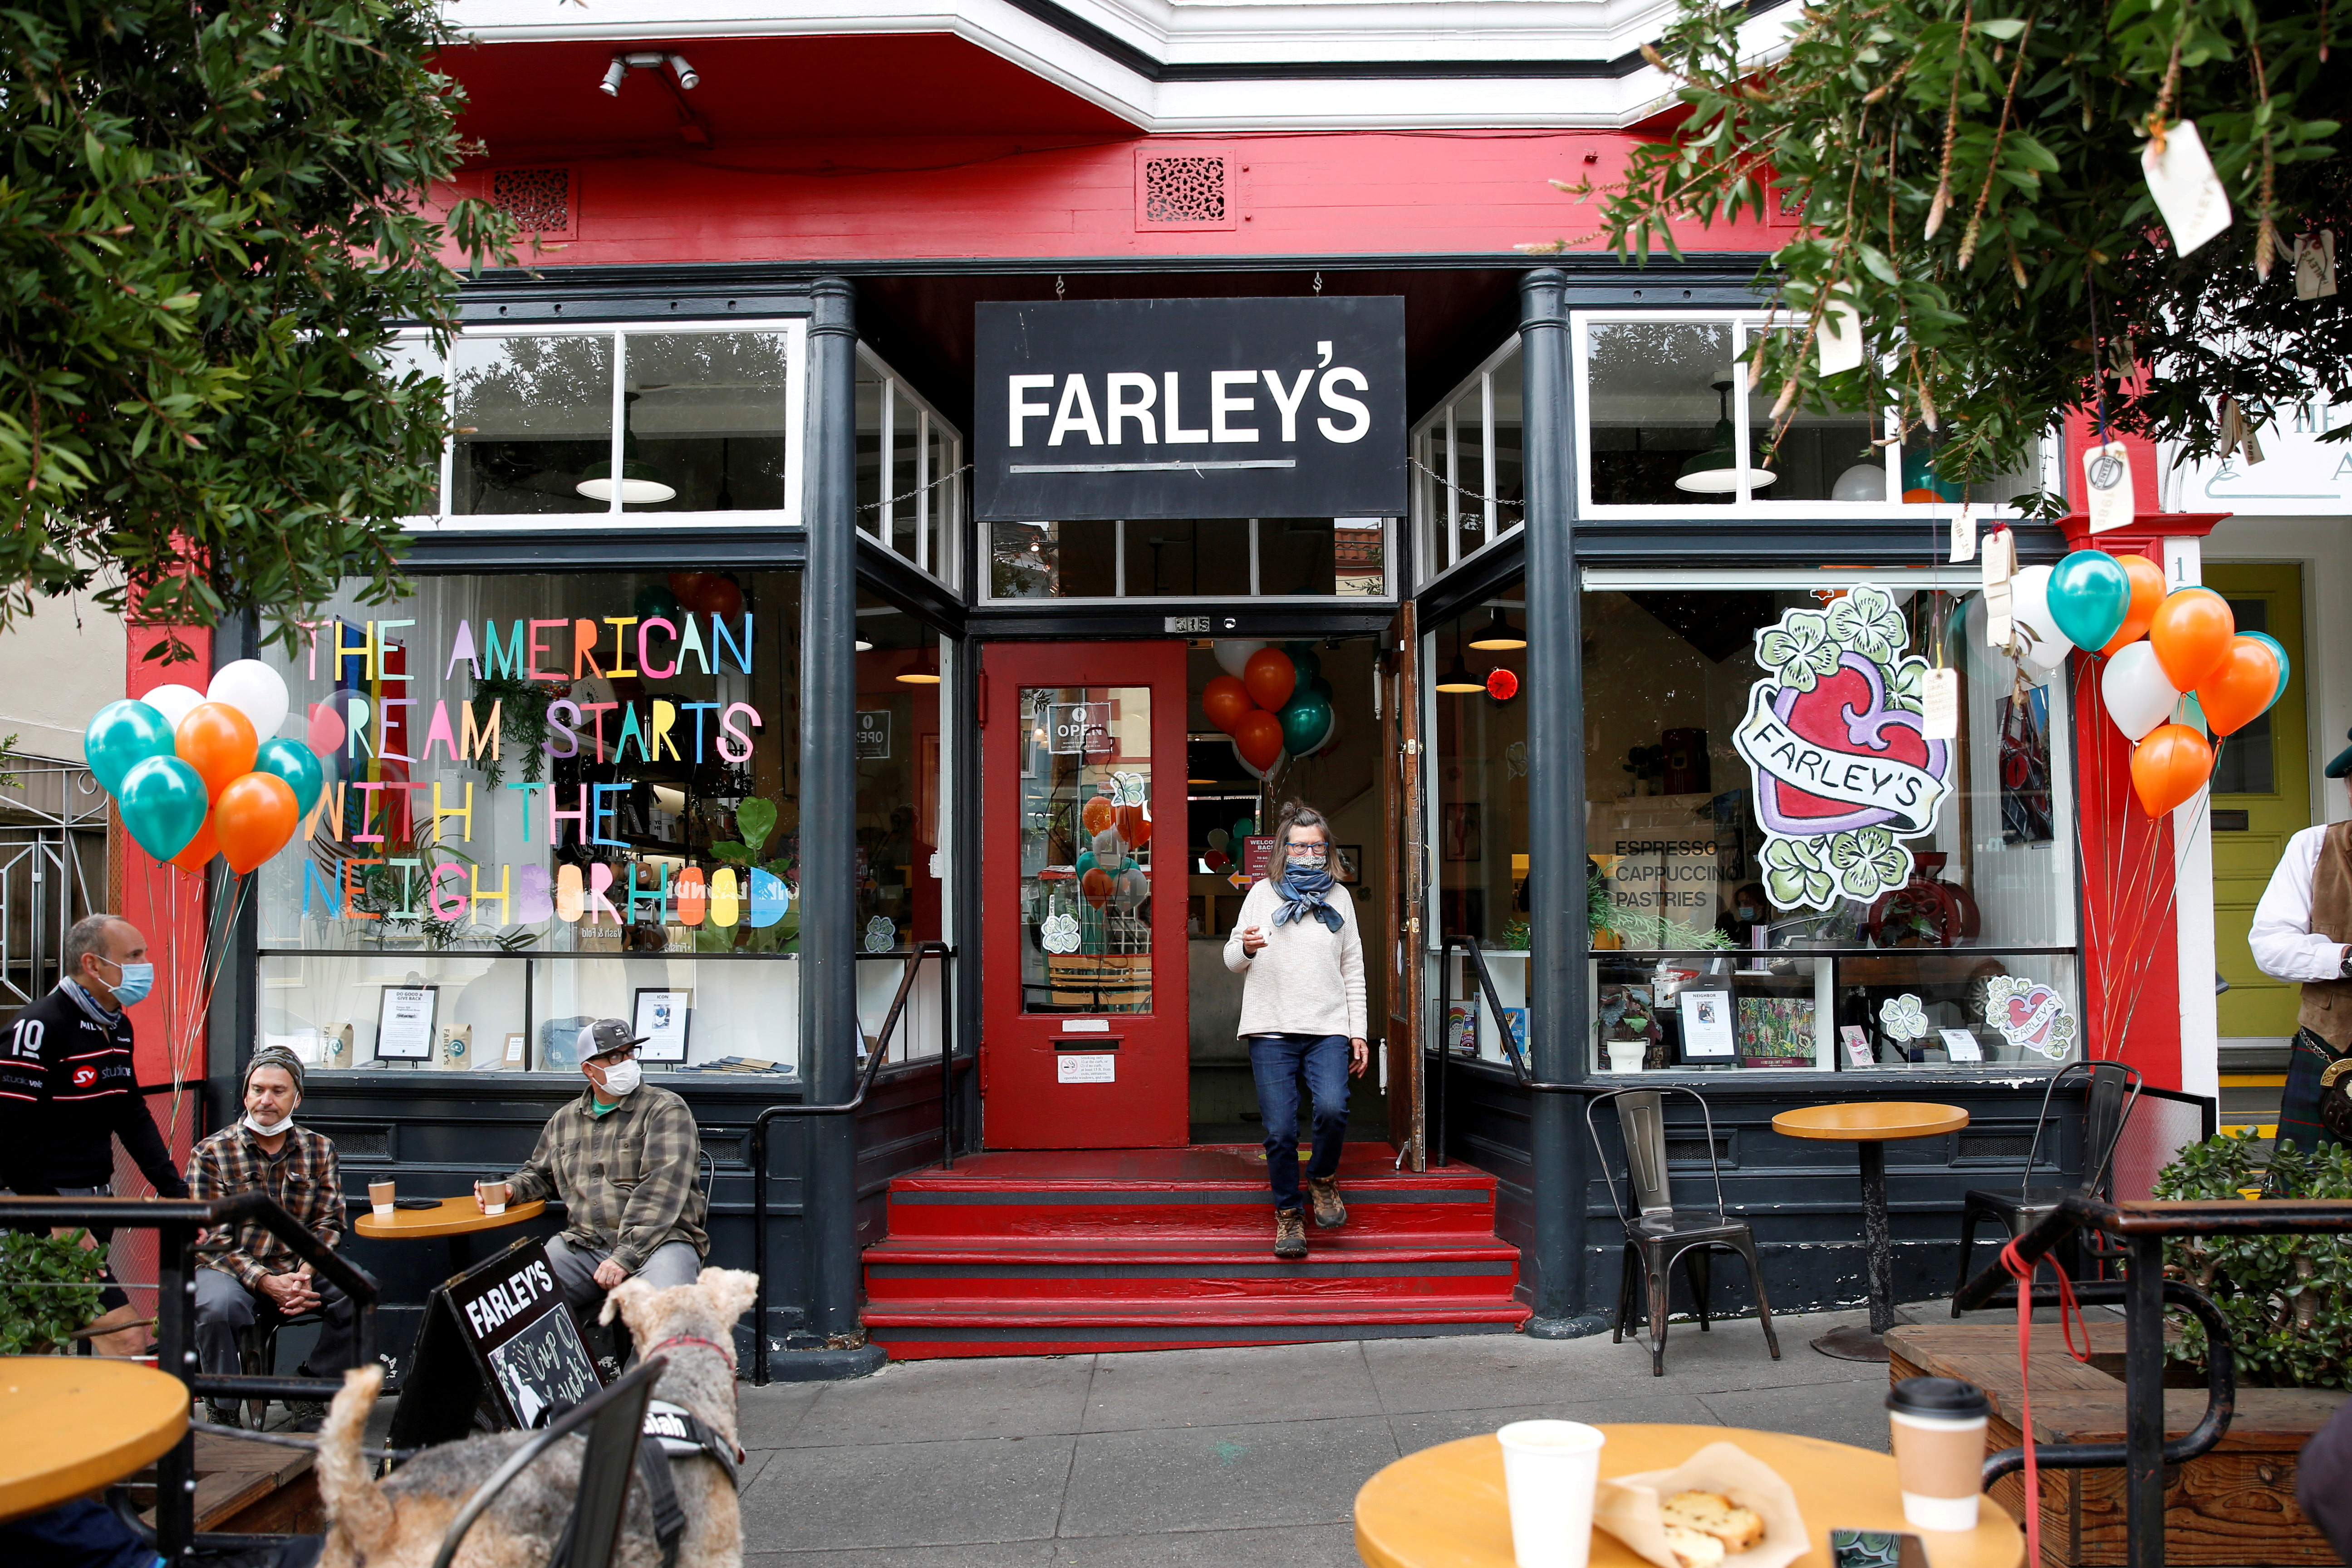 Guests enjoy live music and coffee outside as Farley's cafe marks its 32nd anniversary with bagpipes, Irish stew, and live music on St. Patrick's Day in San Francisco, California, U.S. March 17, 2021. REUTERS/Brittany Hosea-Small/File Photo